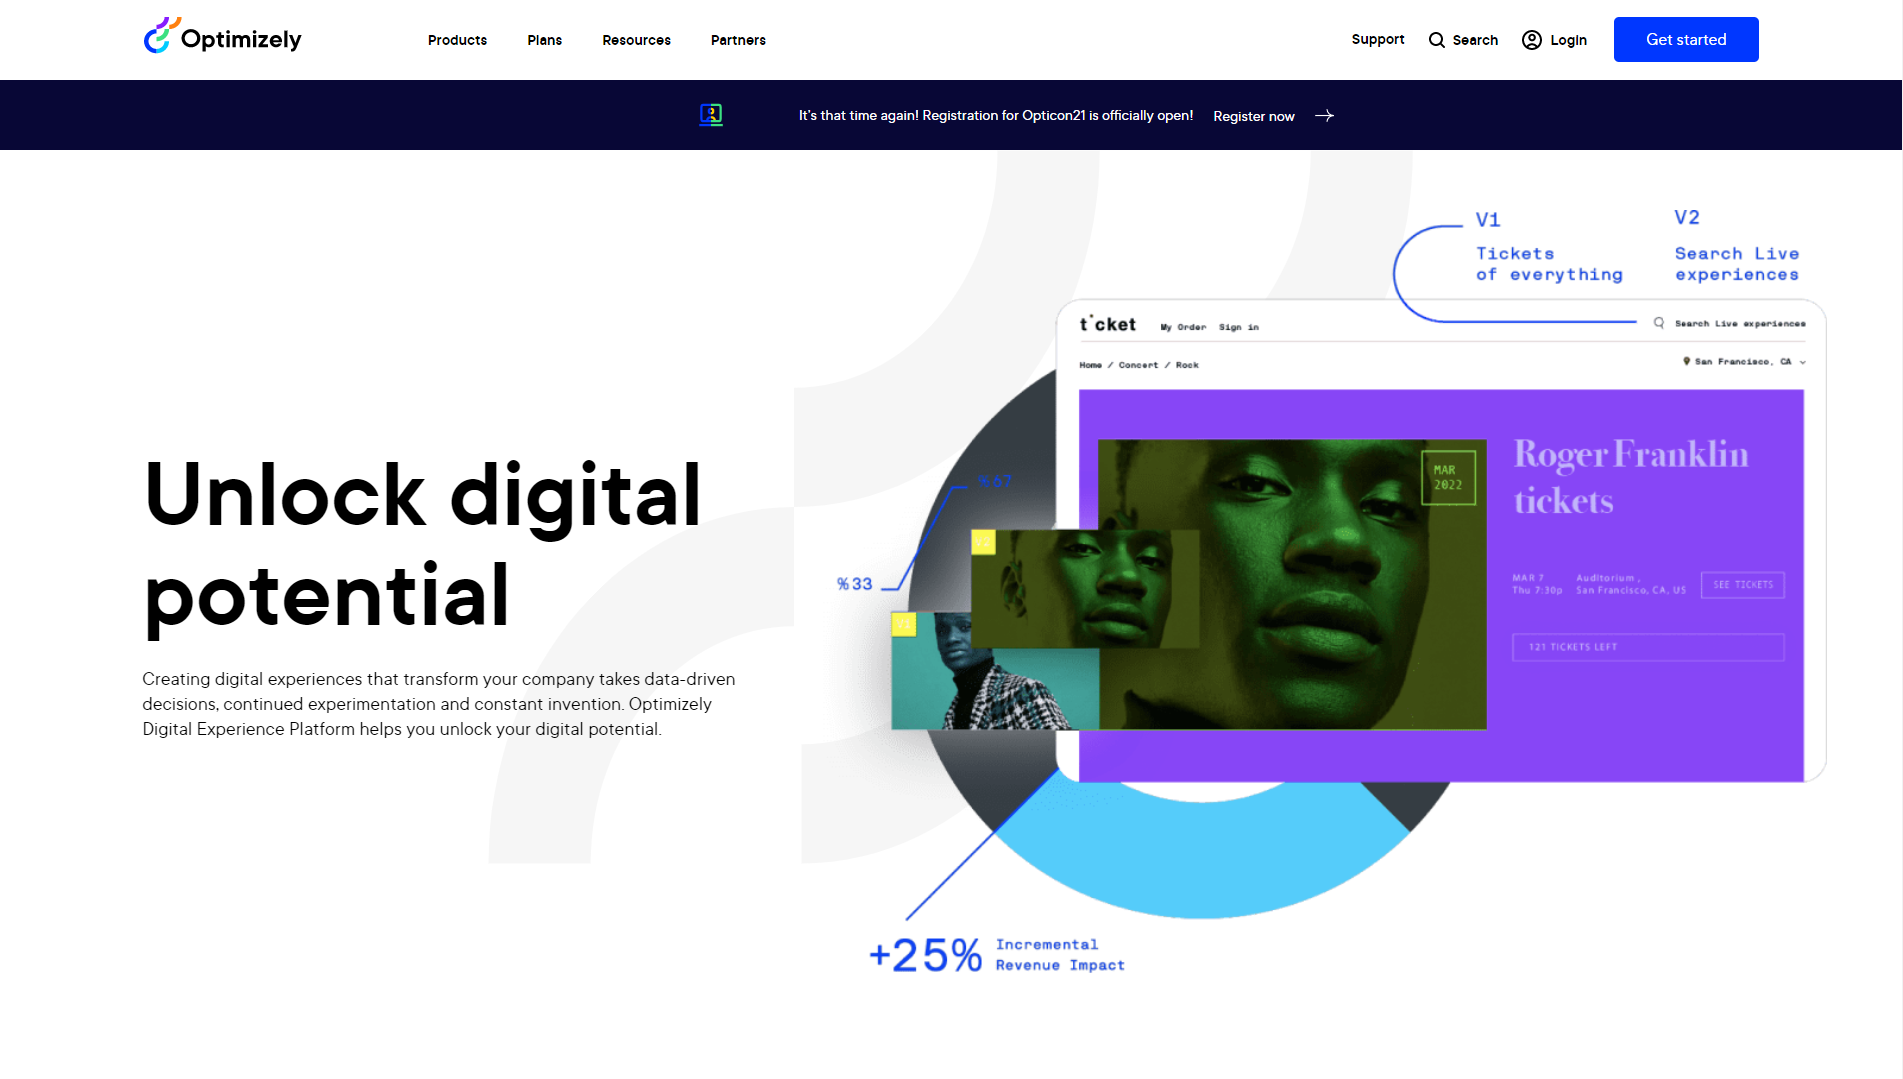 Optimizely home page with copy on unlocking digital potential and creating digital experiences with data using their platform.